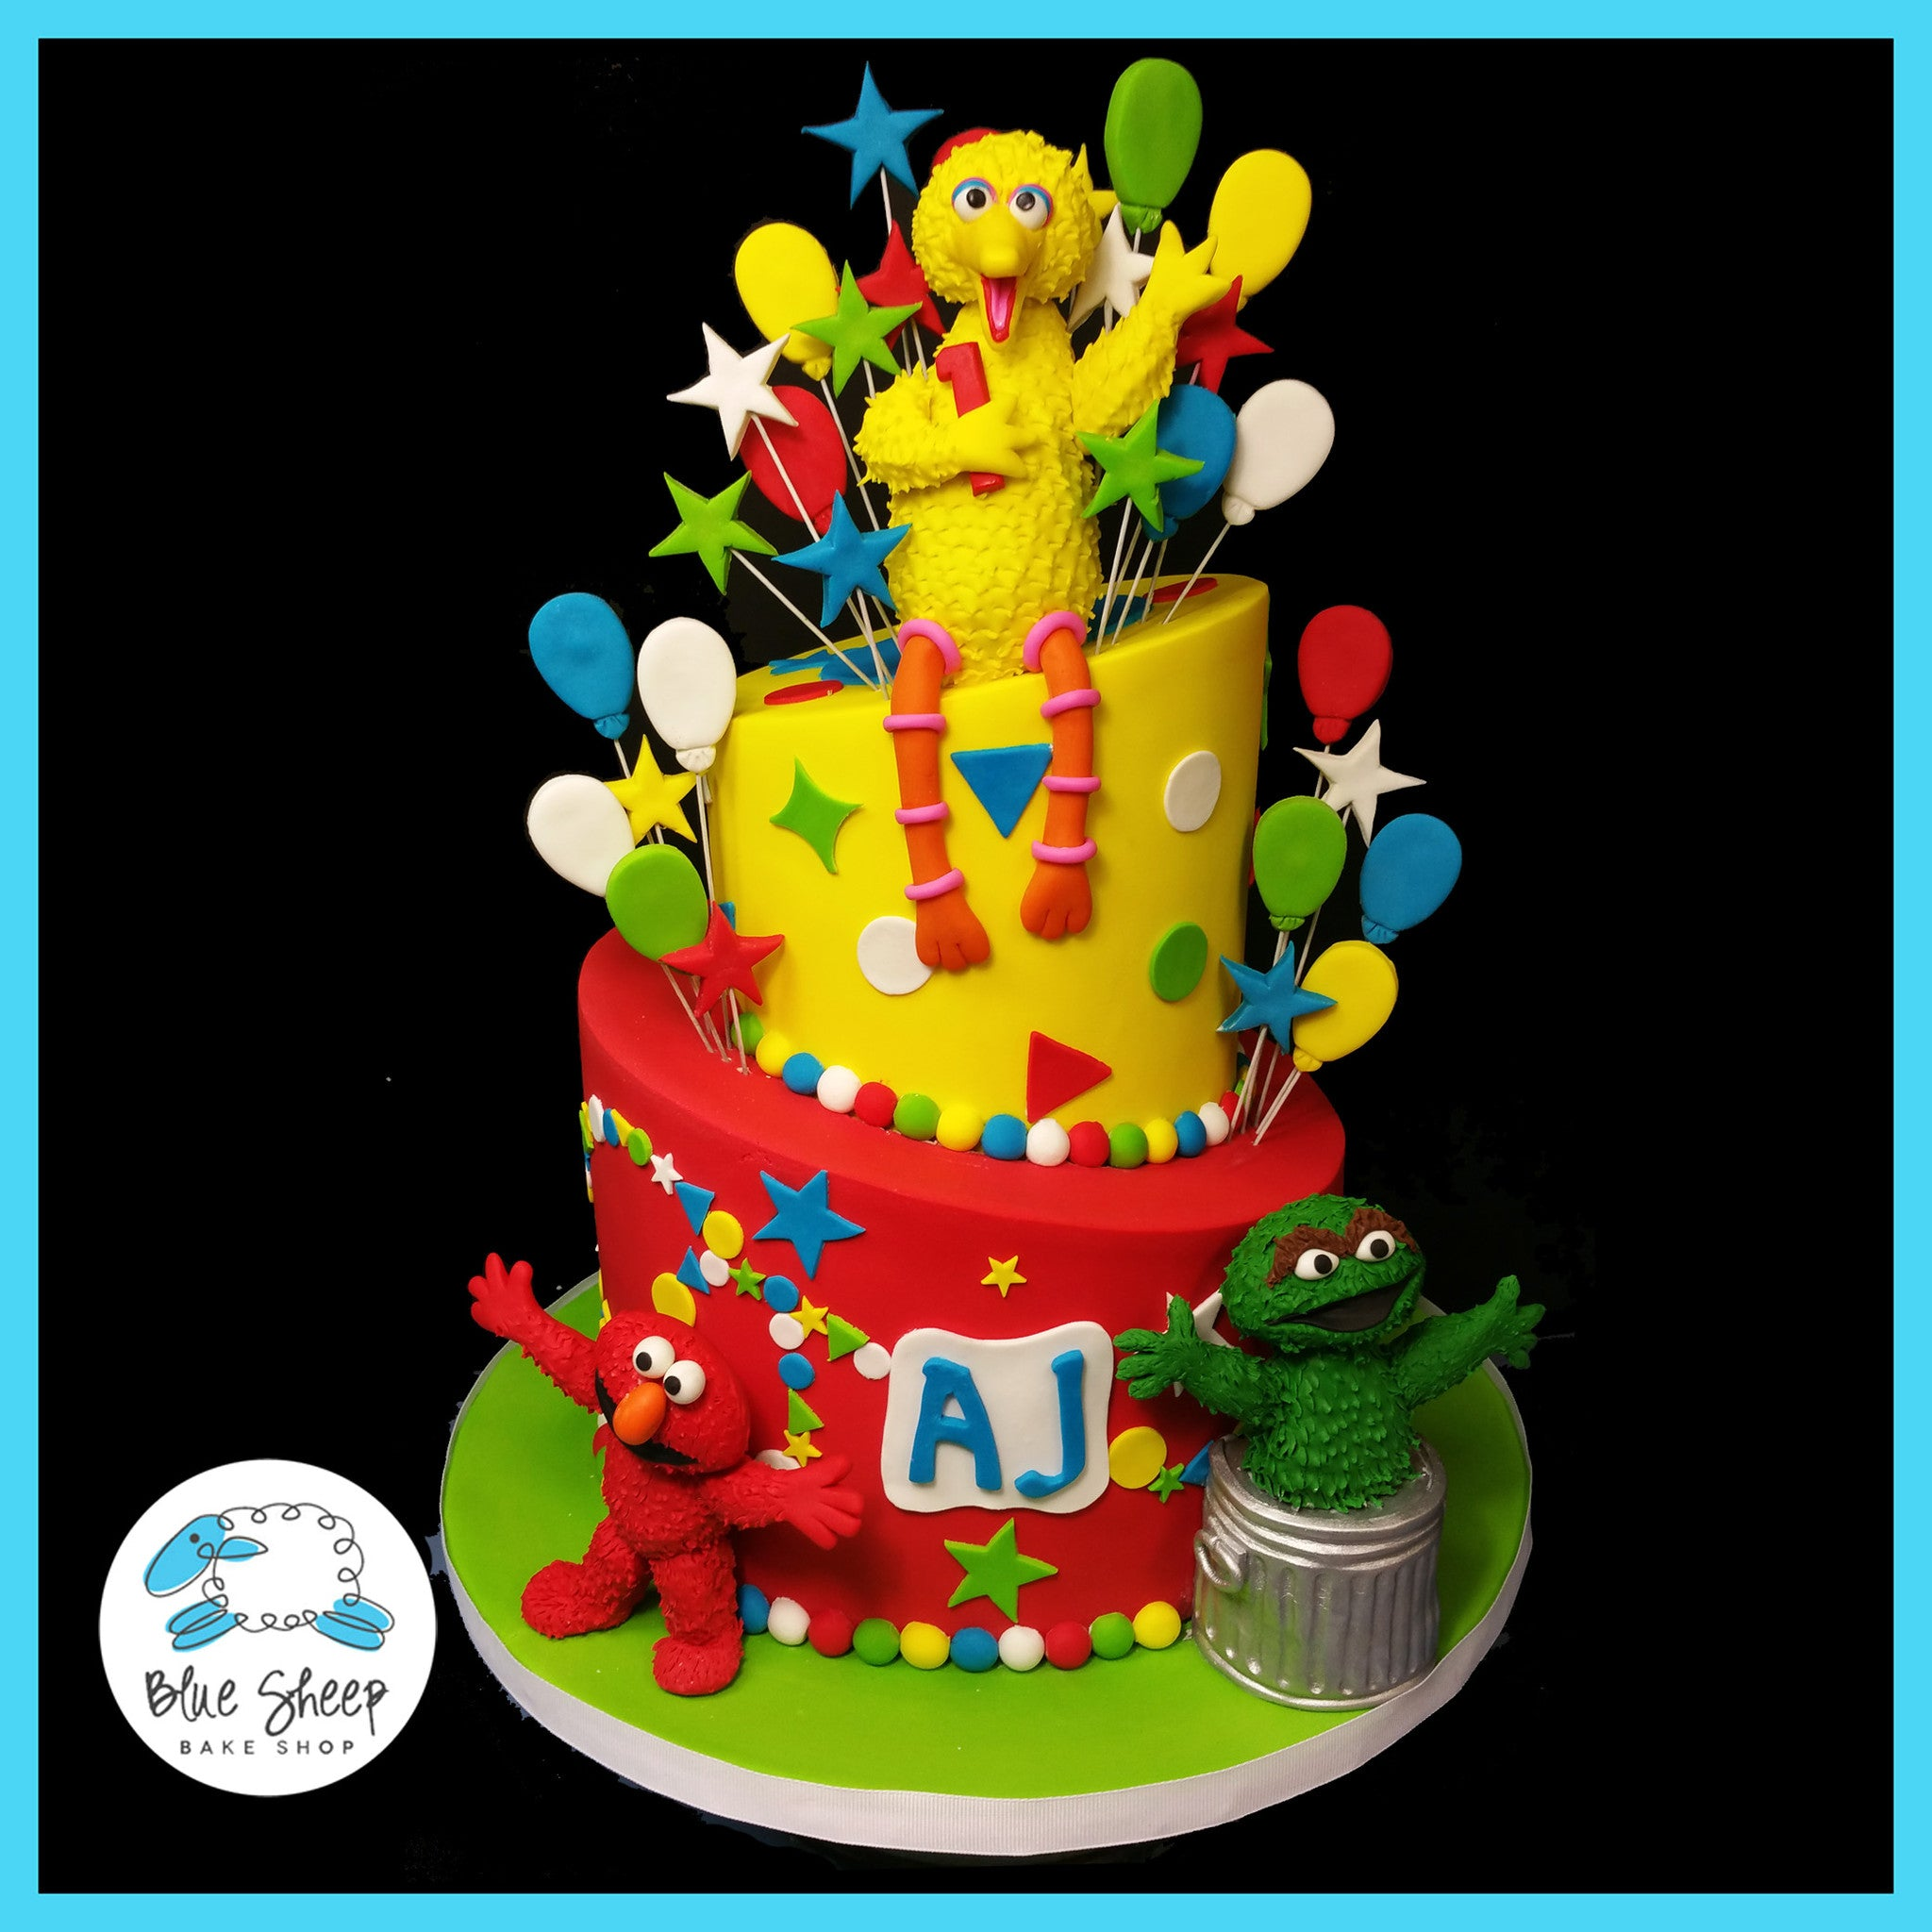 Miraculous Ajs Sesame Street 1St Birthday Cake Blue Sheep Bake Shop Personalised Birthday Cards Paralily Jamesorg